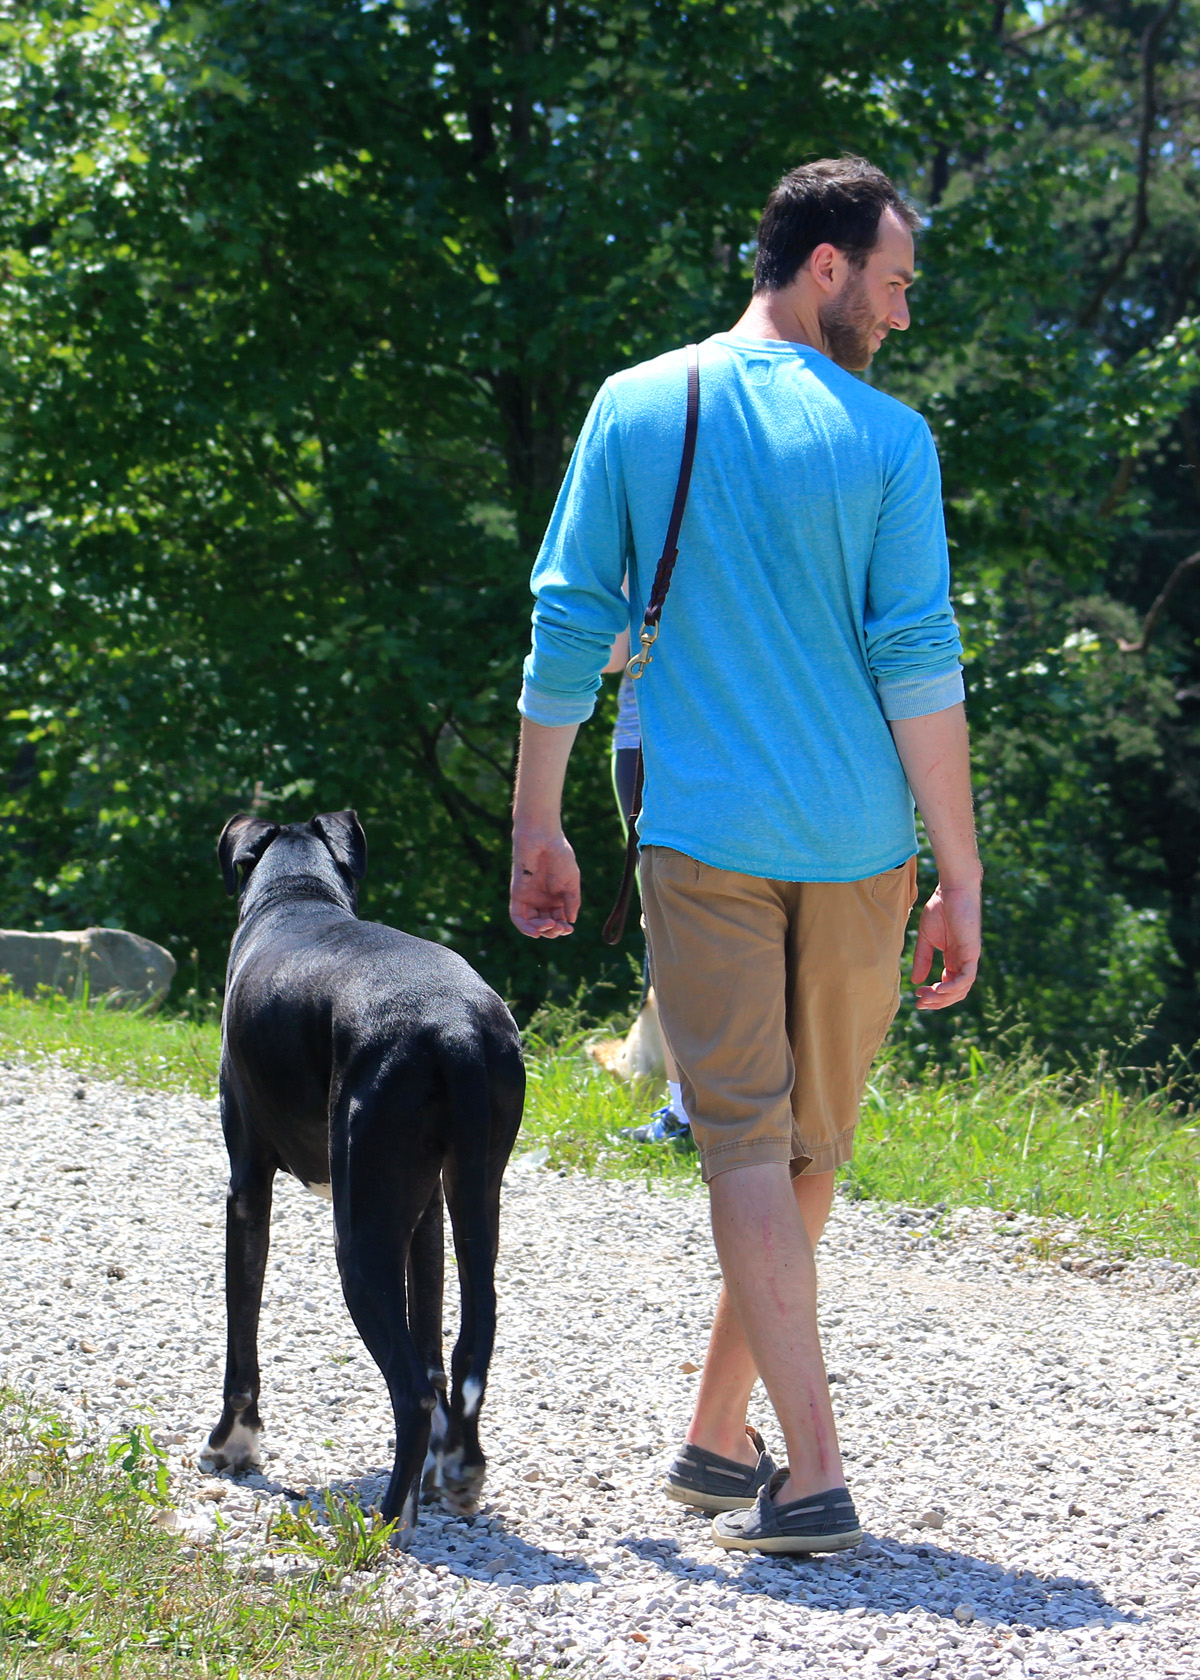 Enjoying the freedom and trust of off-leash control